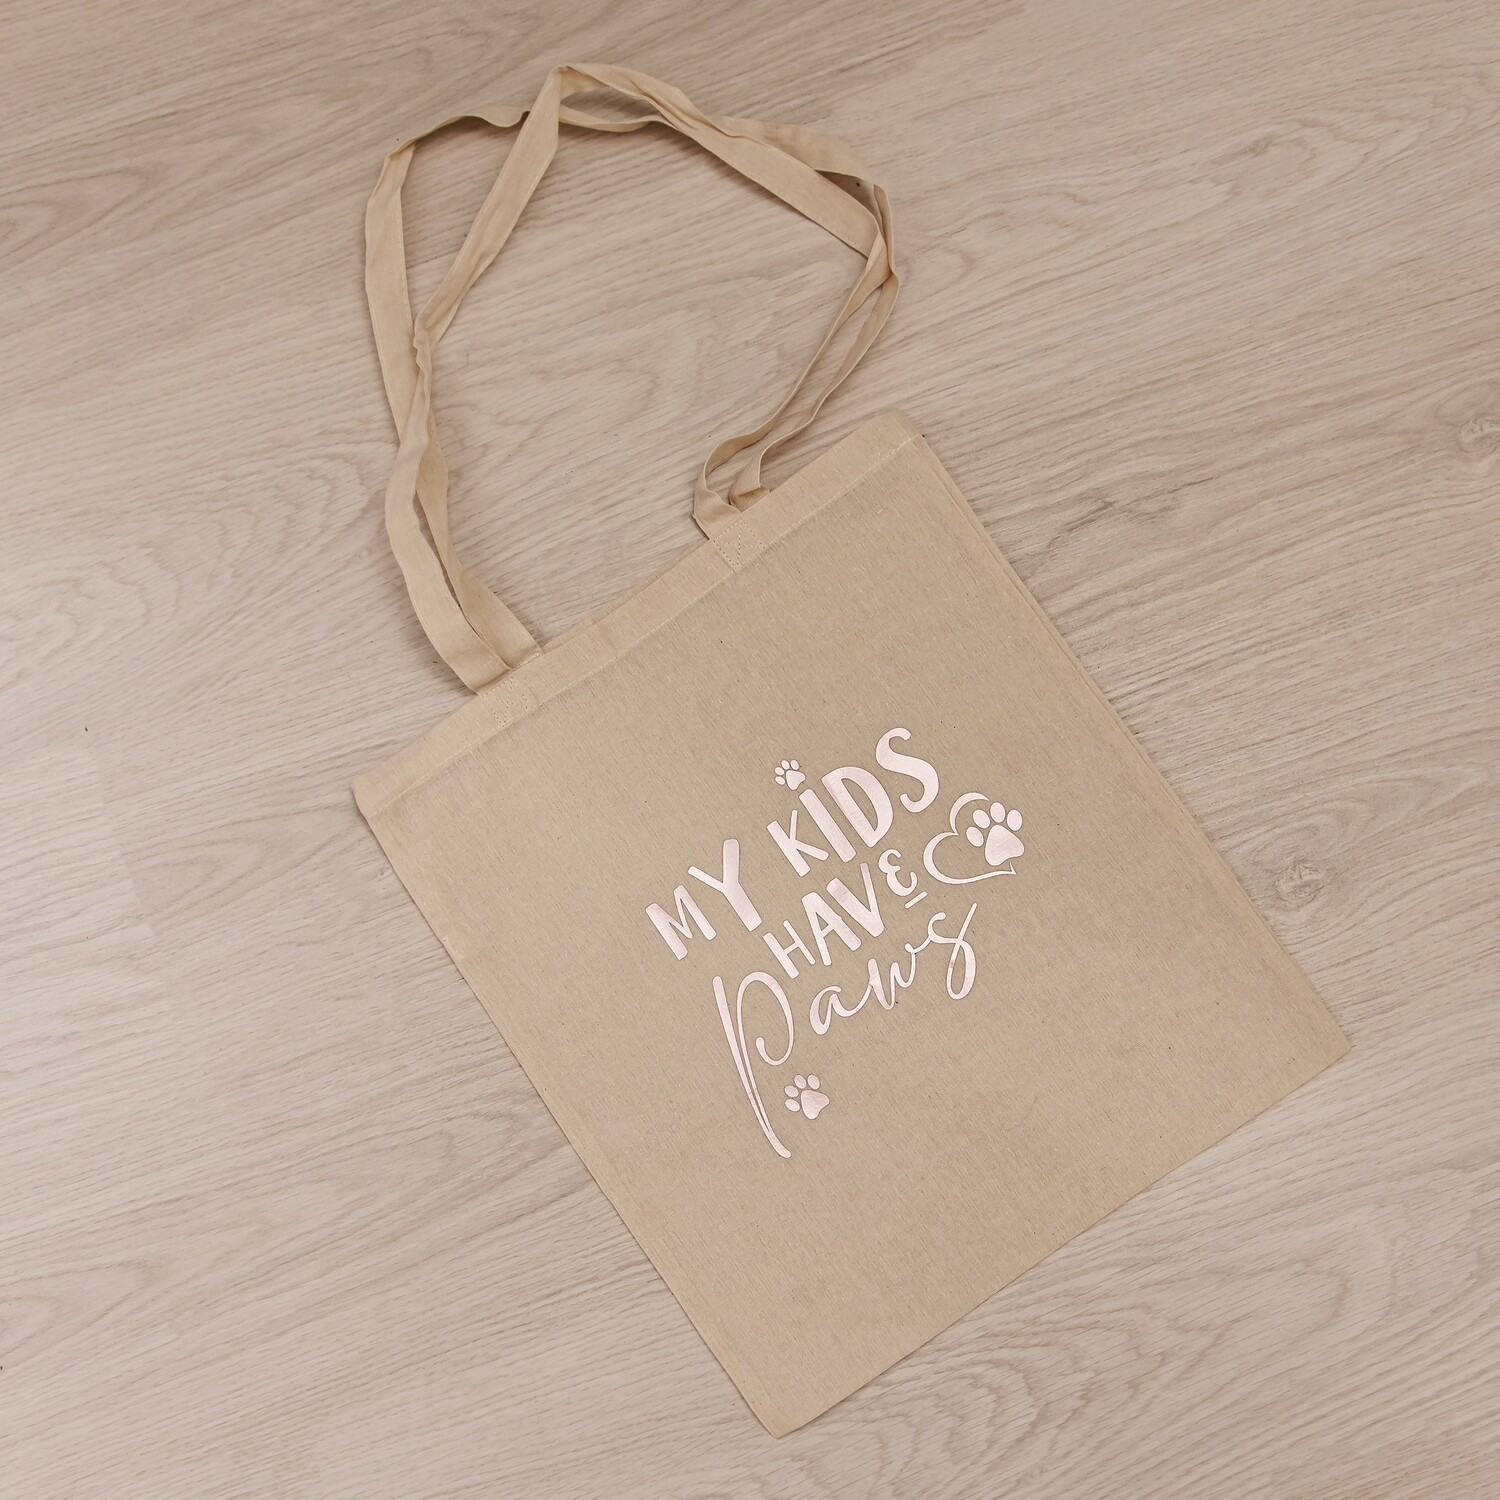 Cotton Shopper Bag - Design 2 - My Kids Have Paws